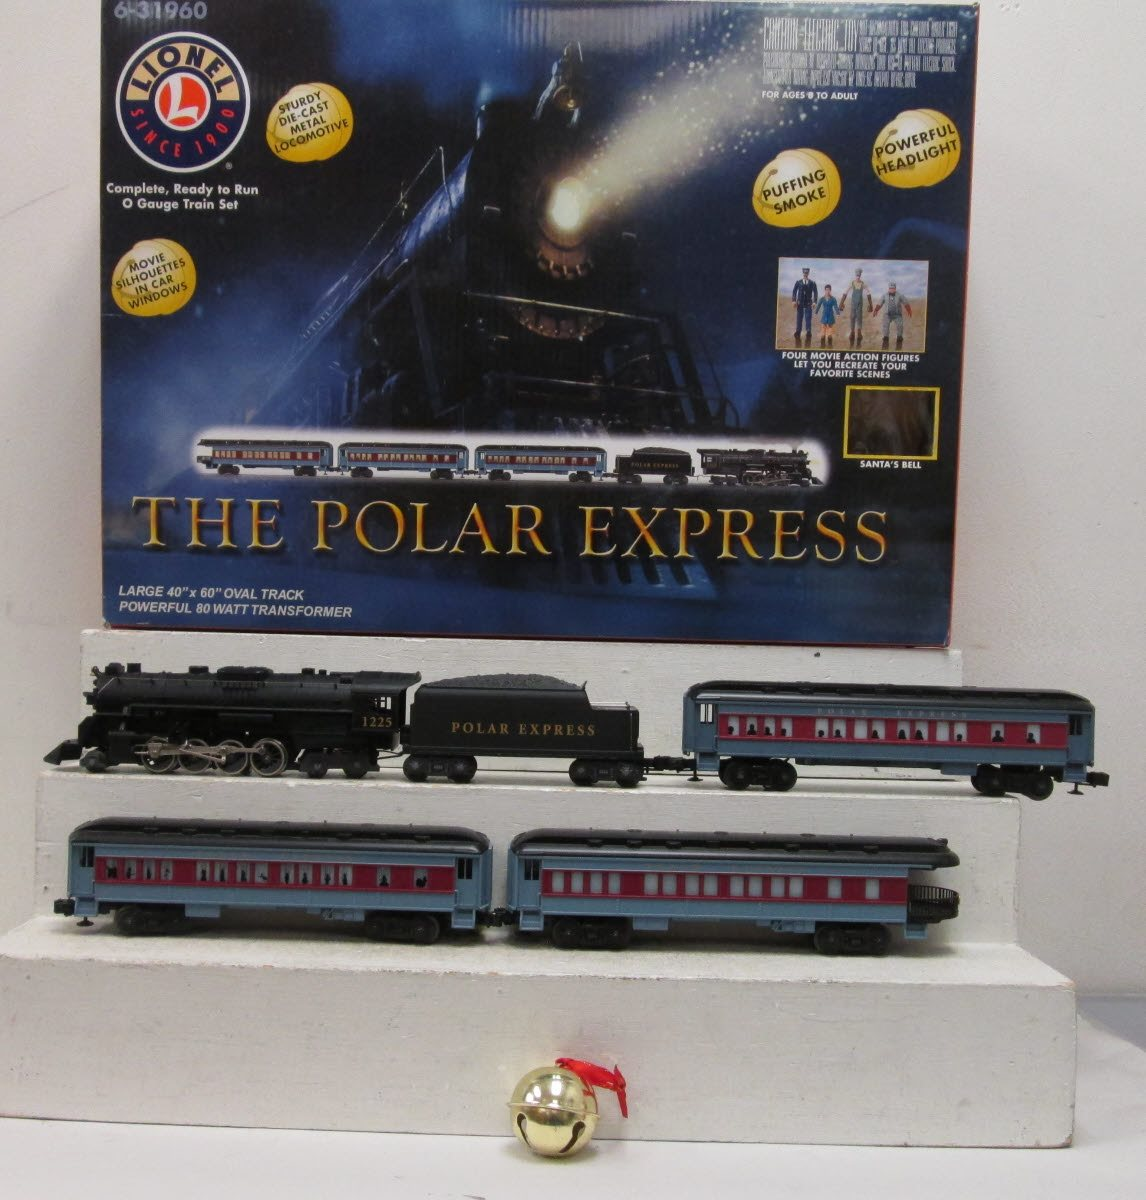 Buy Lionel 6-31960 Polar Express Train Set - No Track or ...